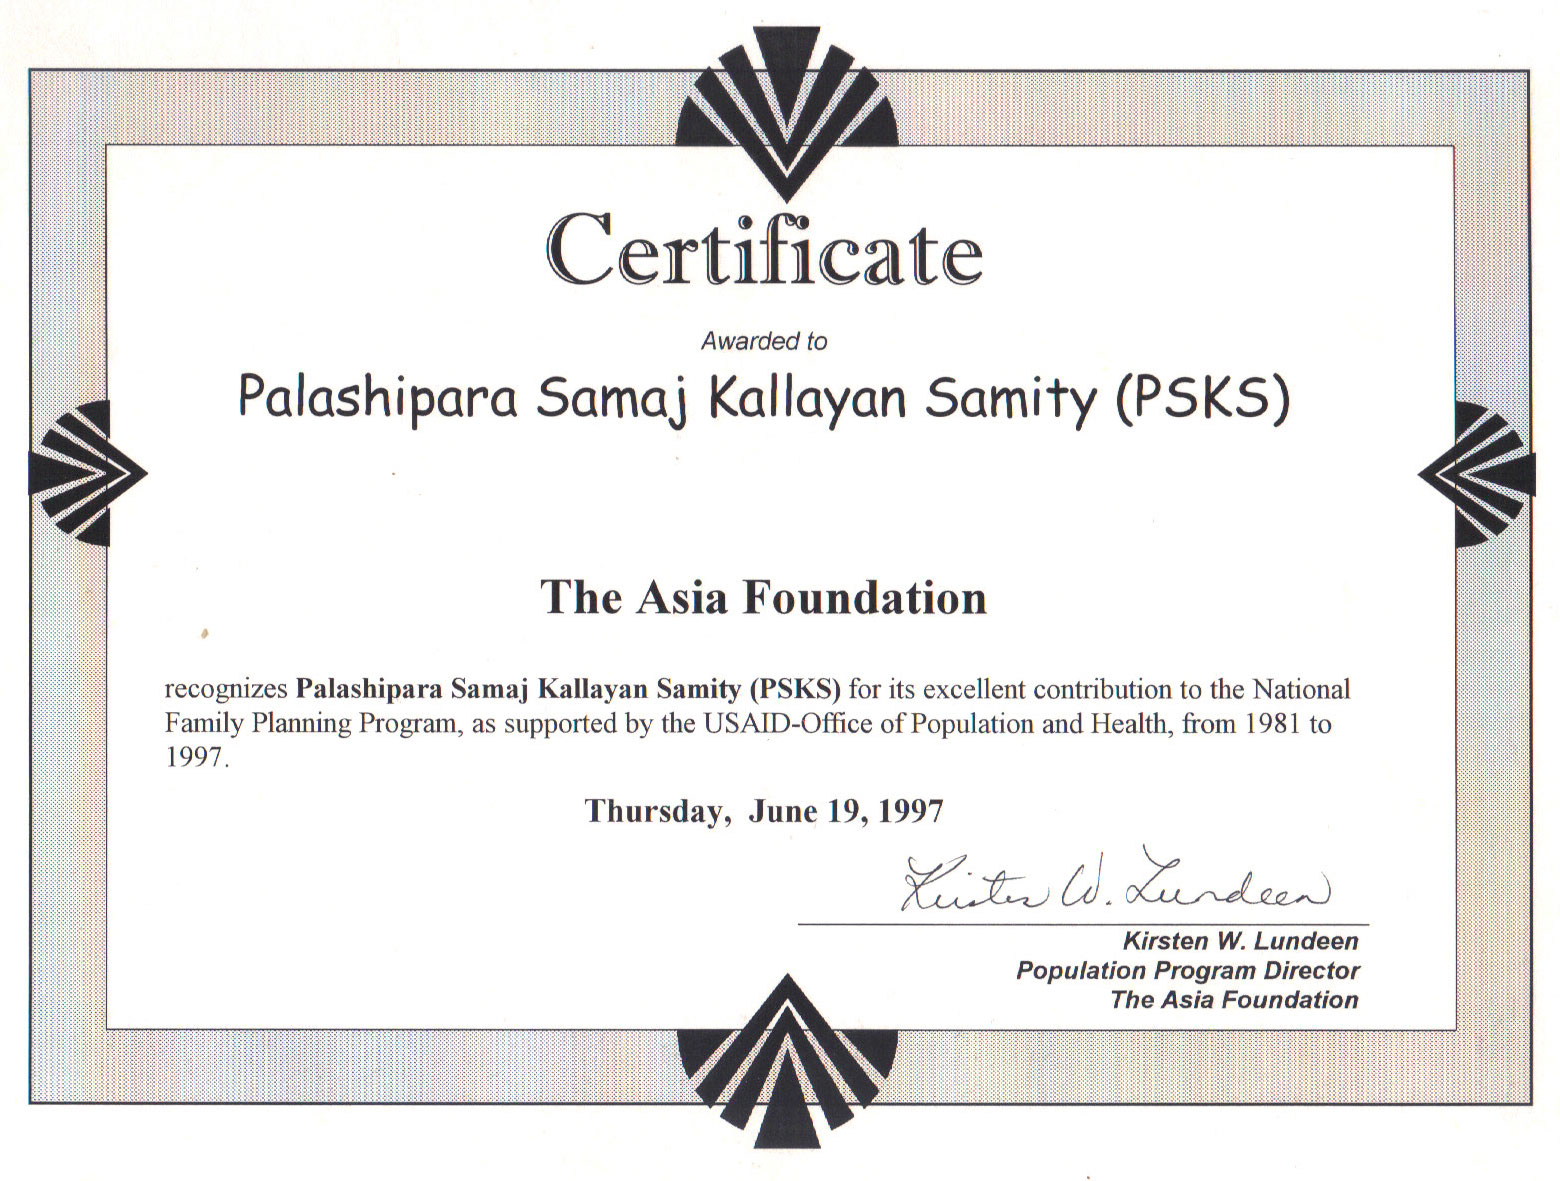 The-Asia-Foundation-Experience-Certificate